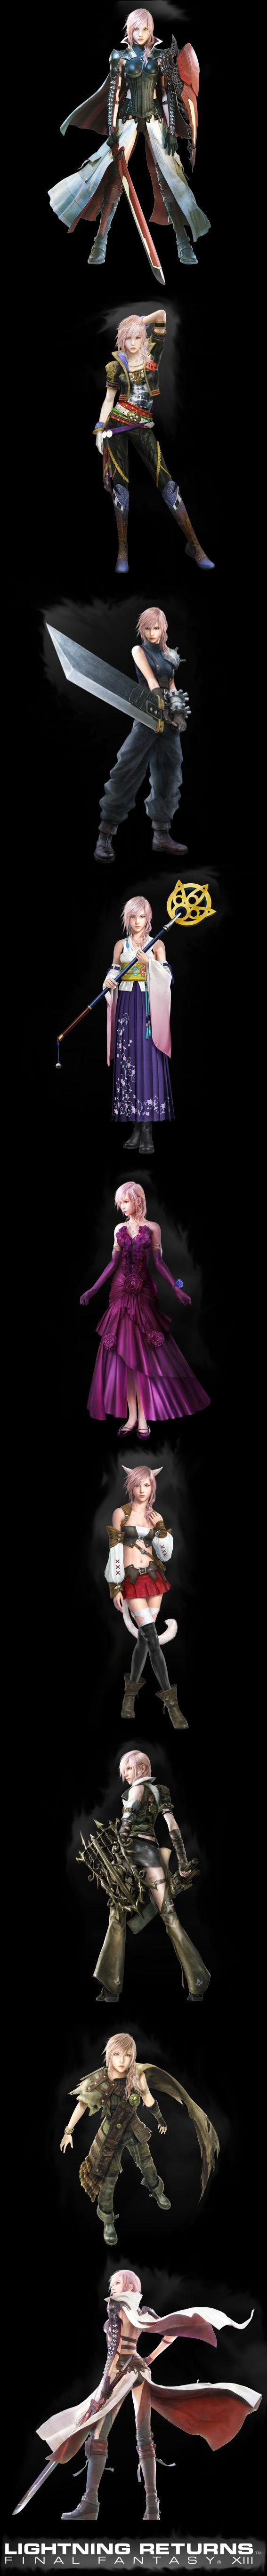 #finalfantasy #lightning  - Изображение 1